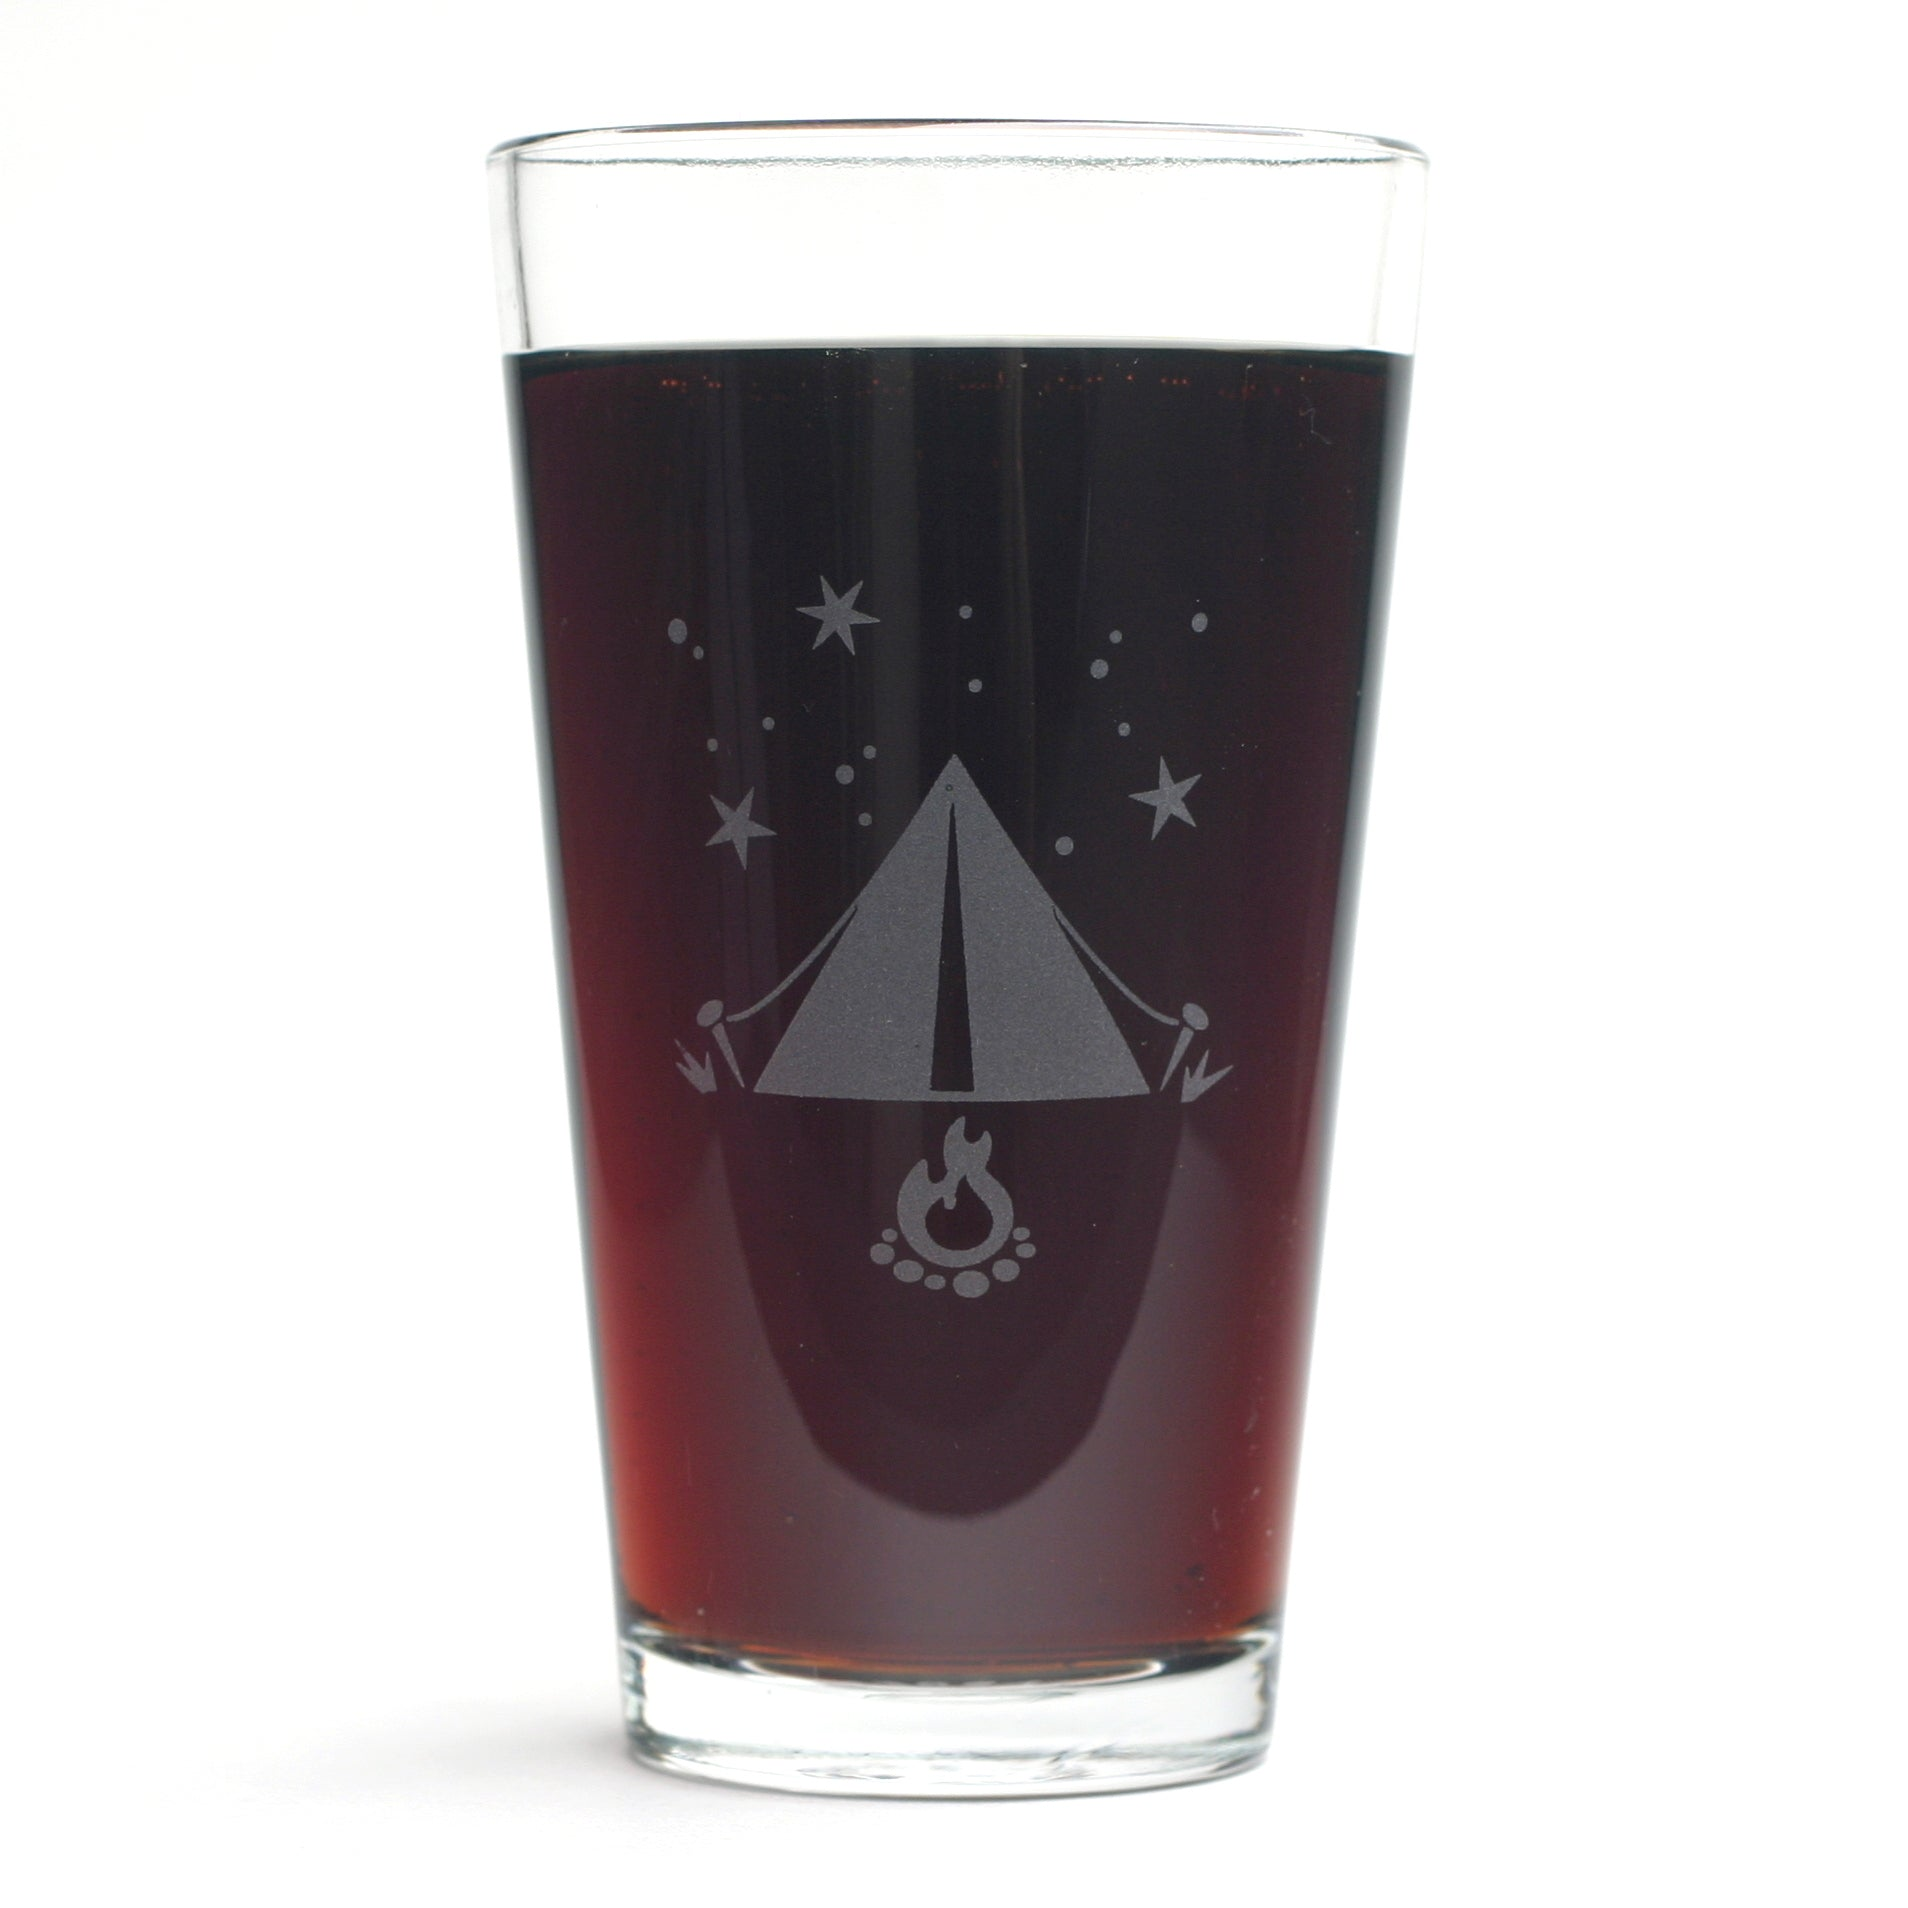 Tent camping pint glass by Bread and Badger